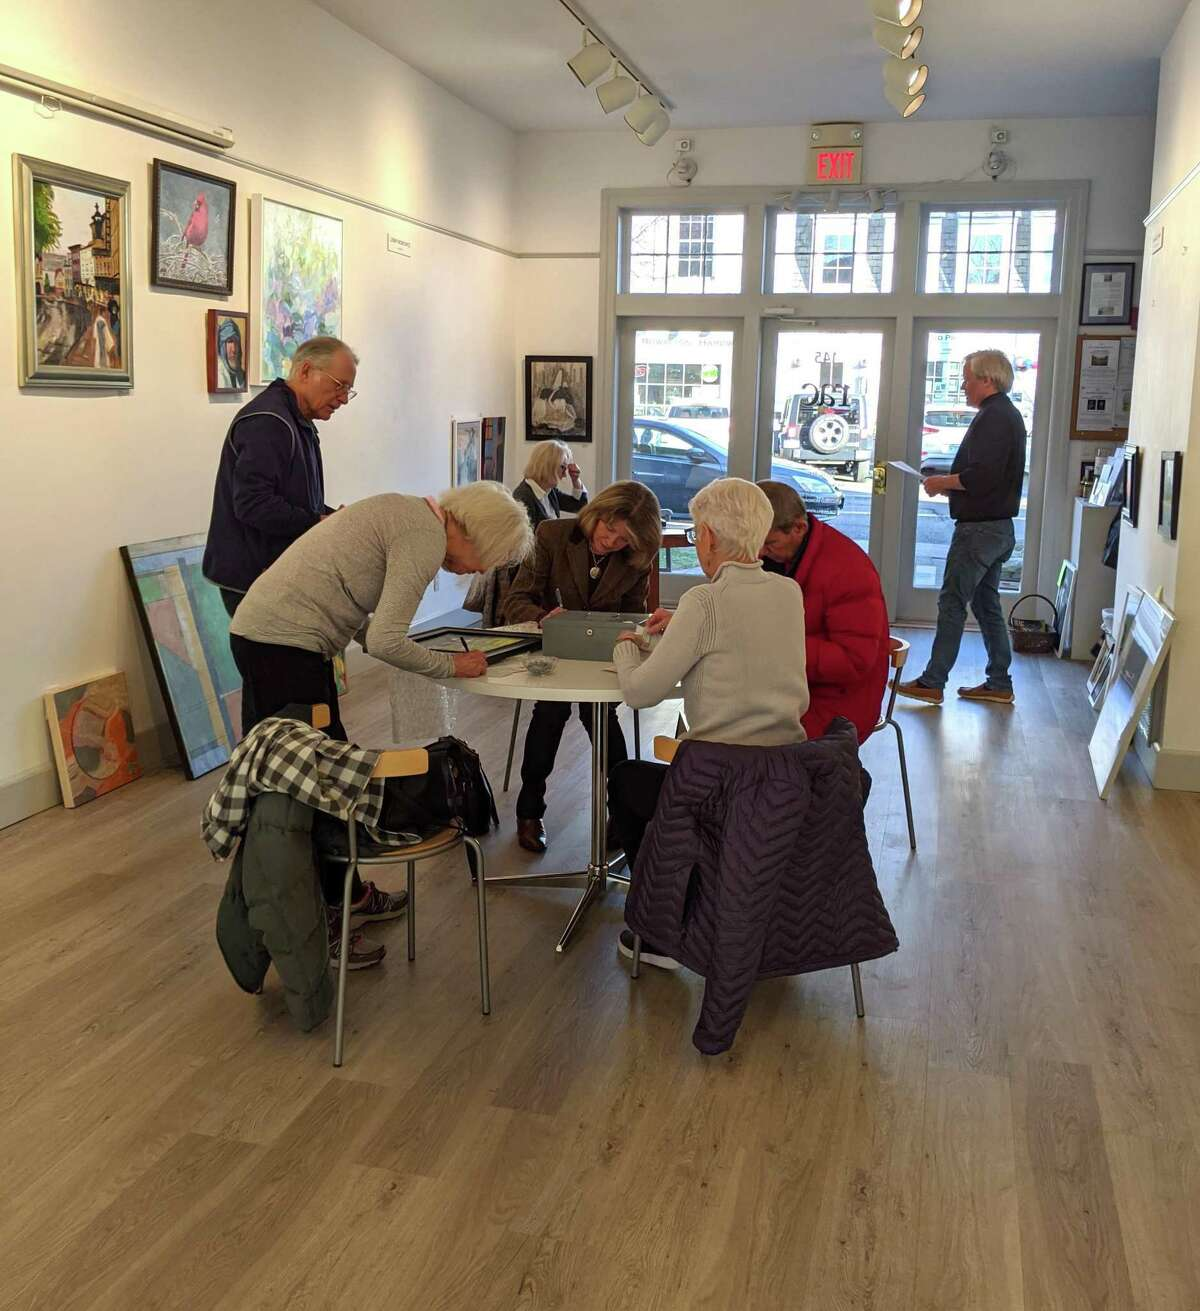 Artists in the RAC gallery dropping off and picking up.